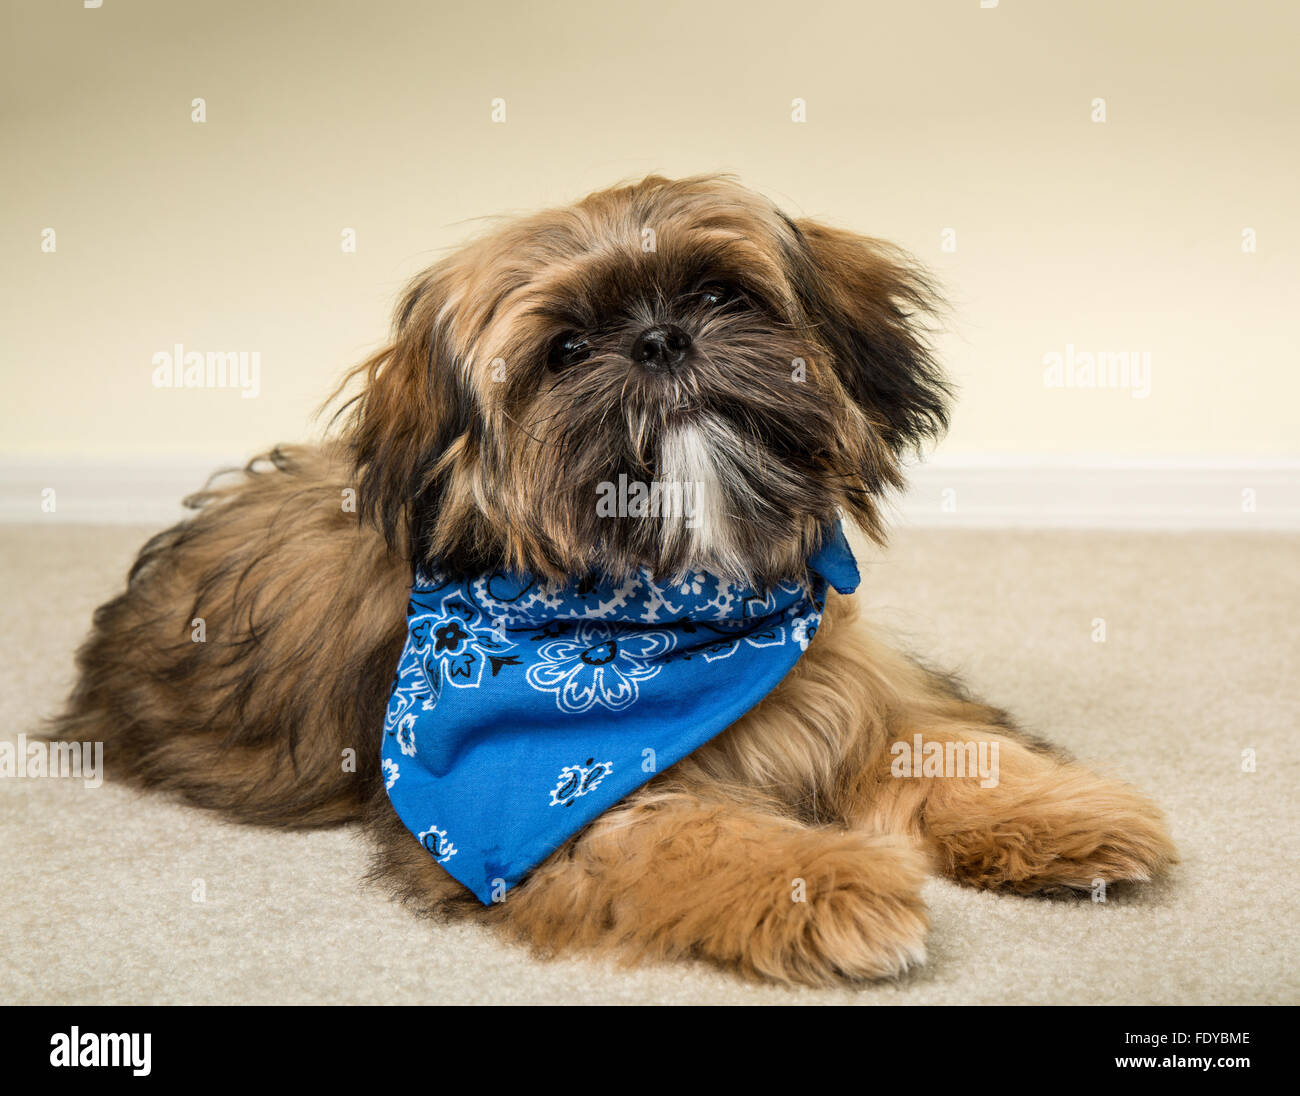 Five Month Old Shih Tzu Puppy Wilson Wearing A Bandana In A Stock